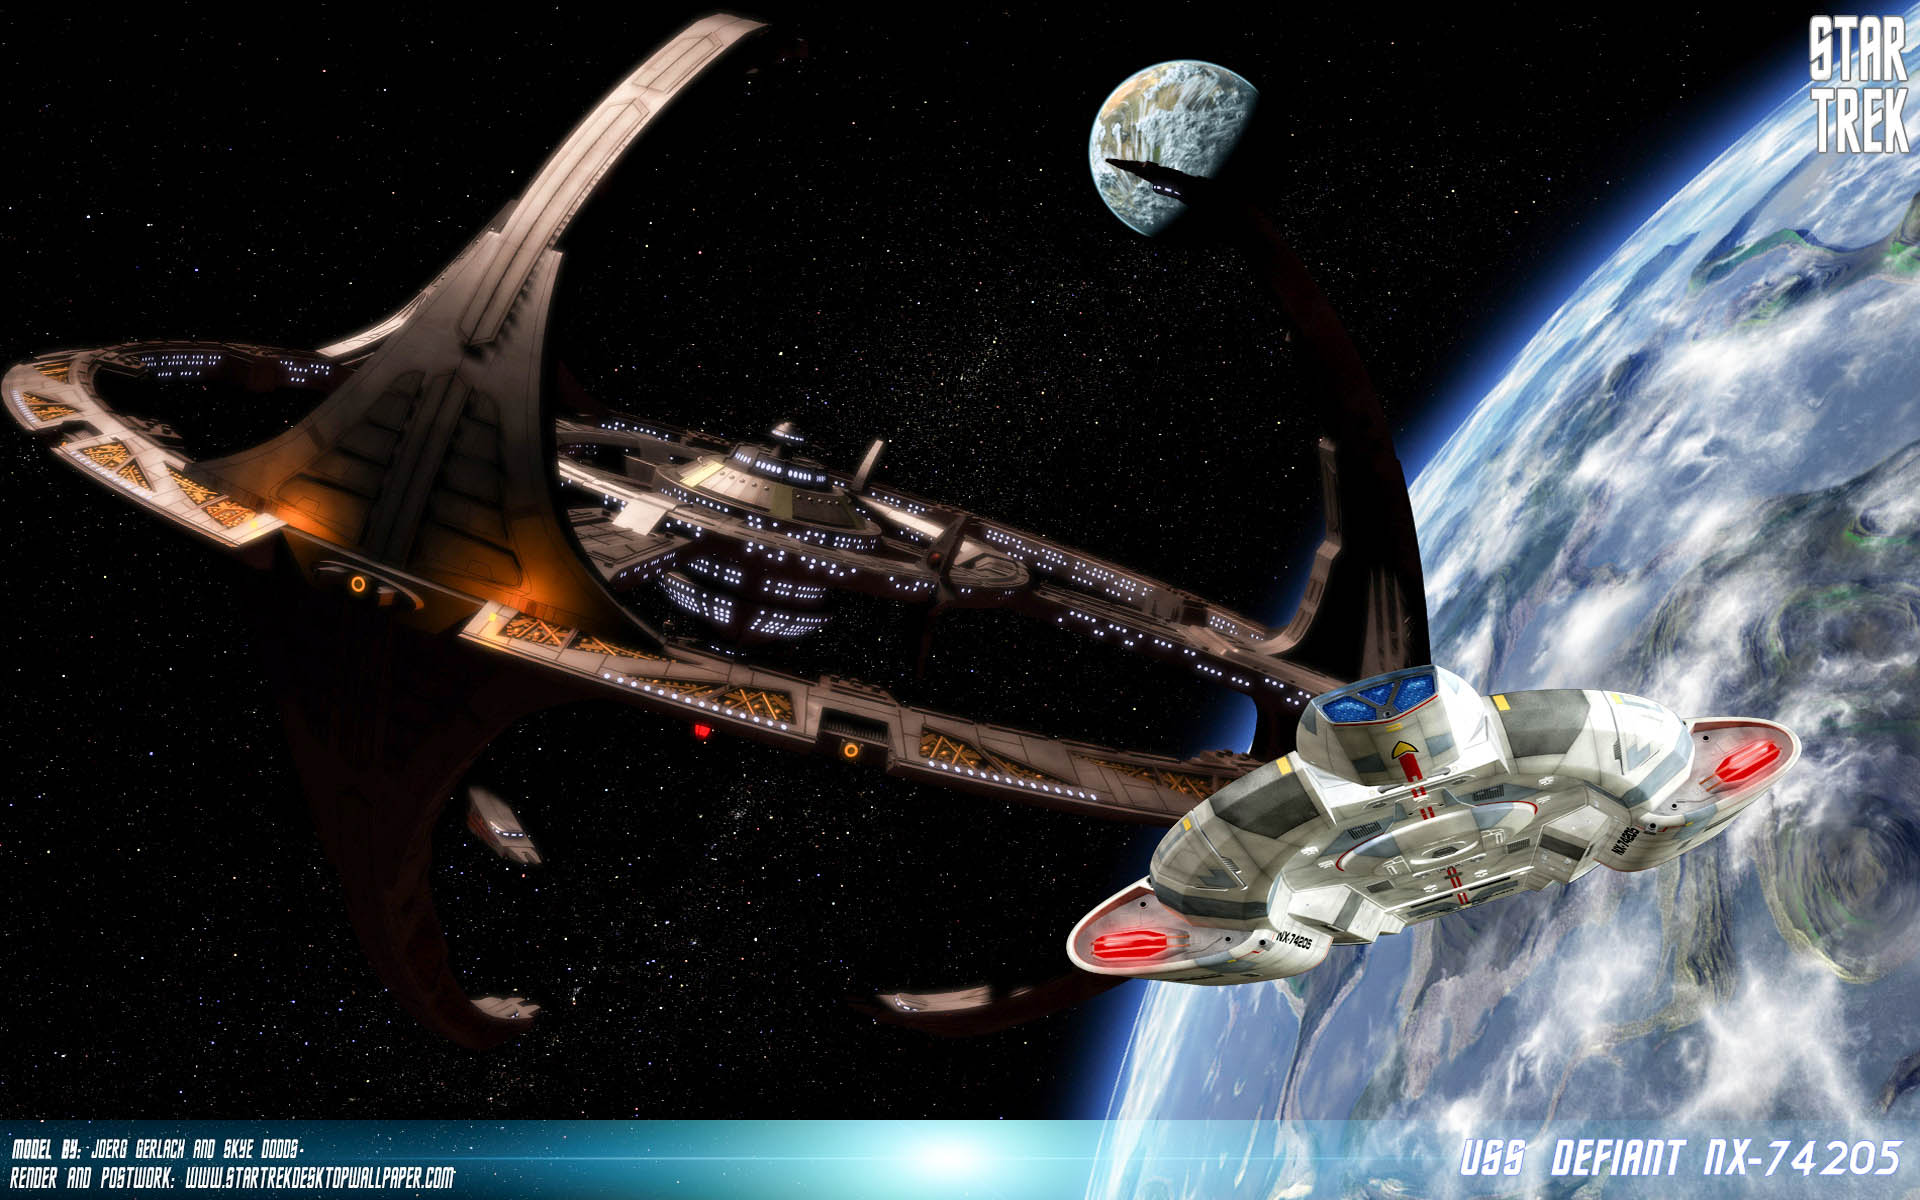 3d Anaglyph Wallpapers Free Download Star Trek Deep Space Nine Tv Show Hd Wallpapers All Hd